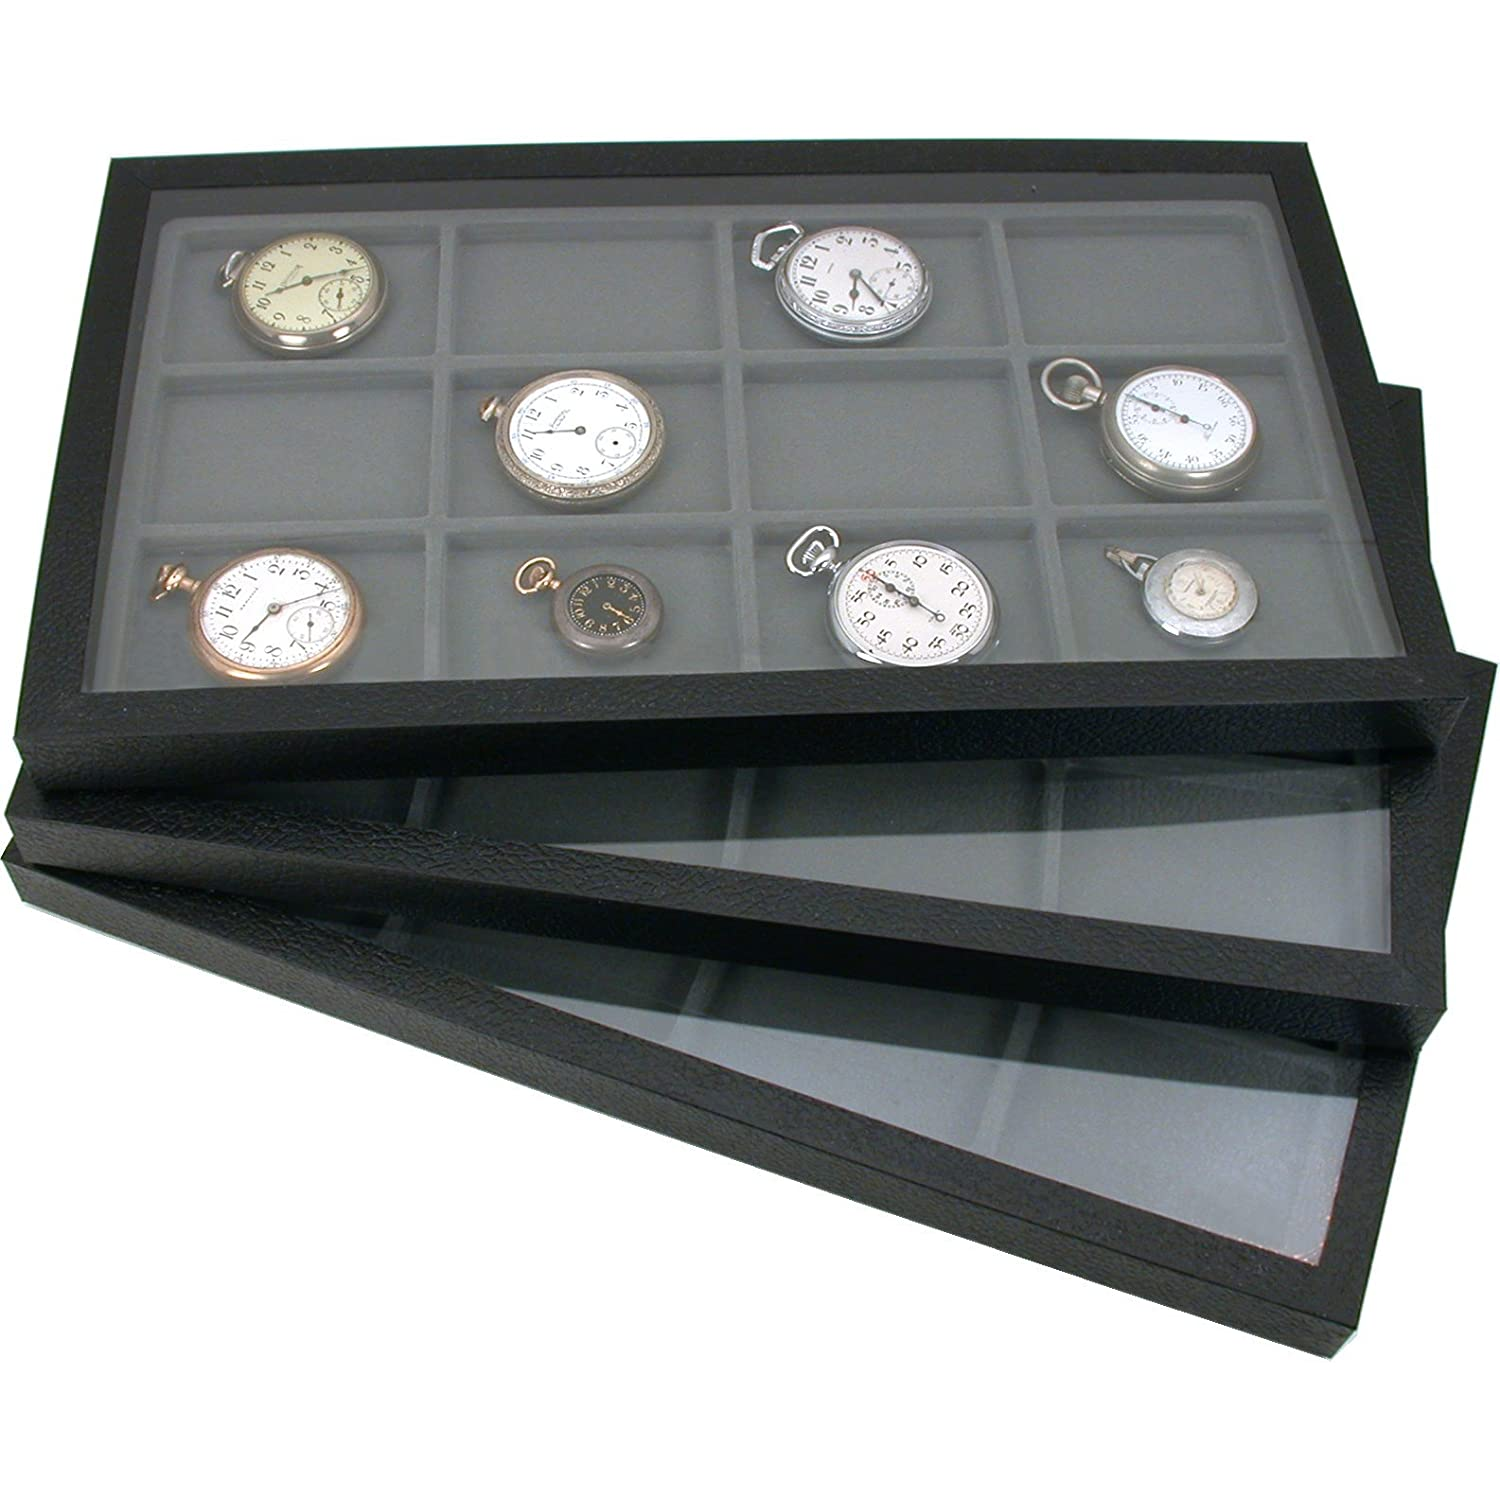 6 Jewelry Box Displays Trays Cases Gray Inserts New KIT-10265